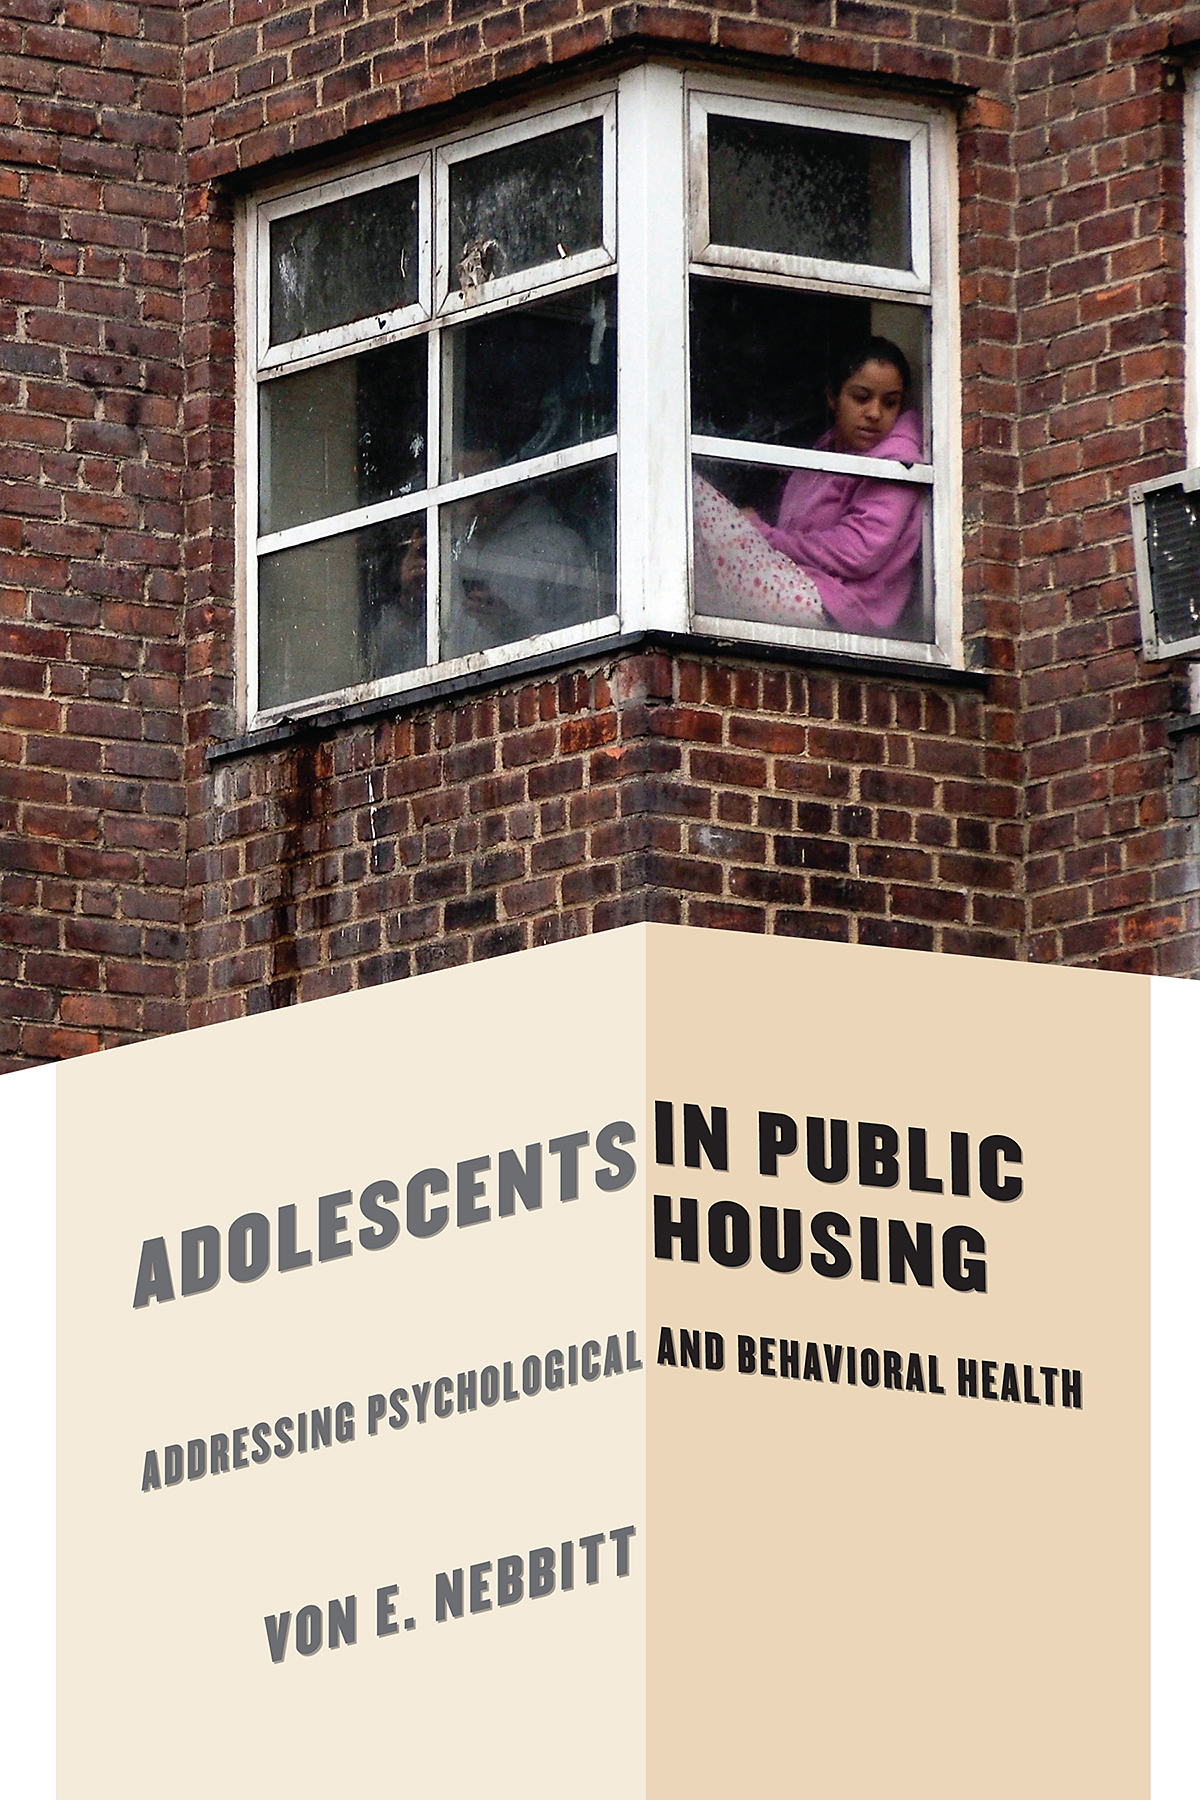 Book Looks At Black Youth In Public Housing Environment Uic Today